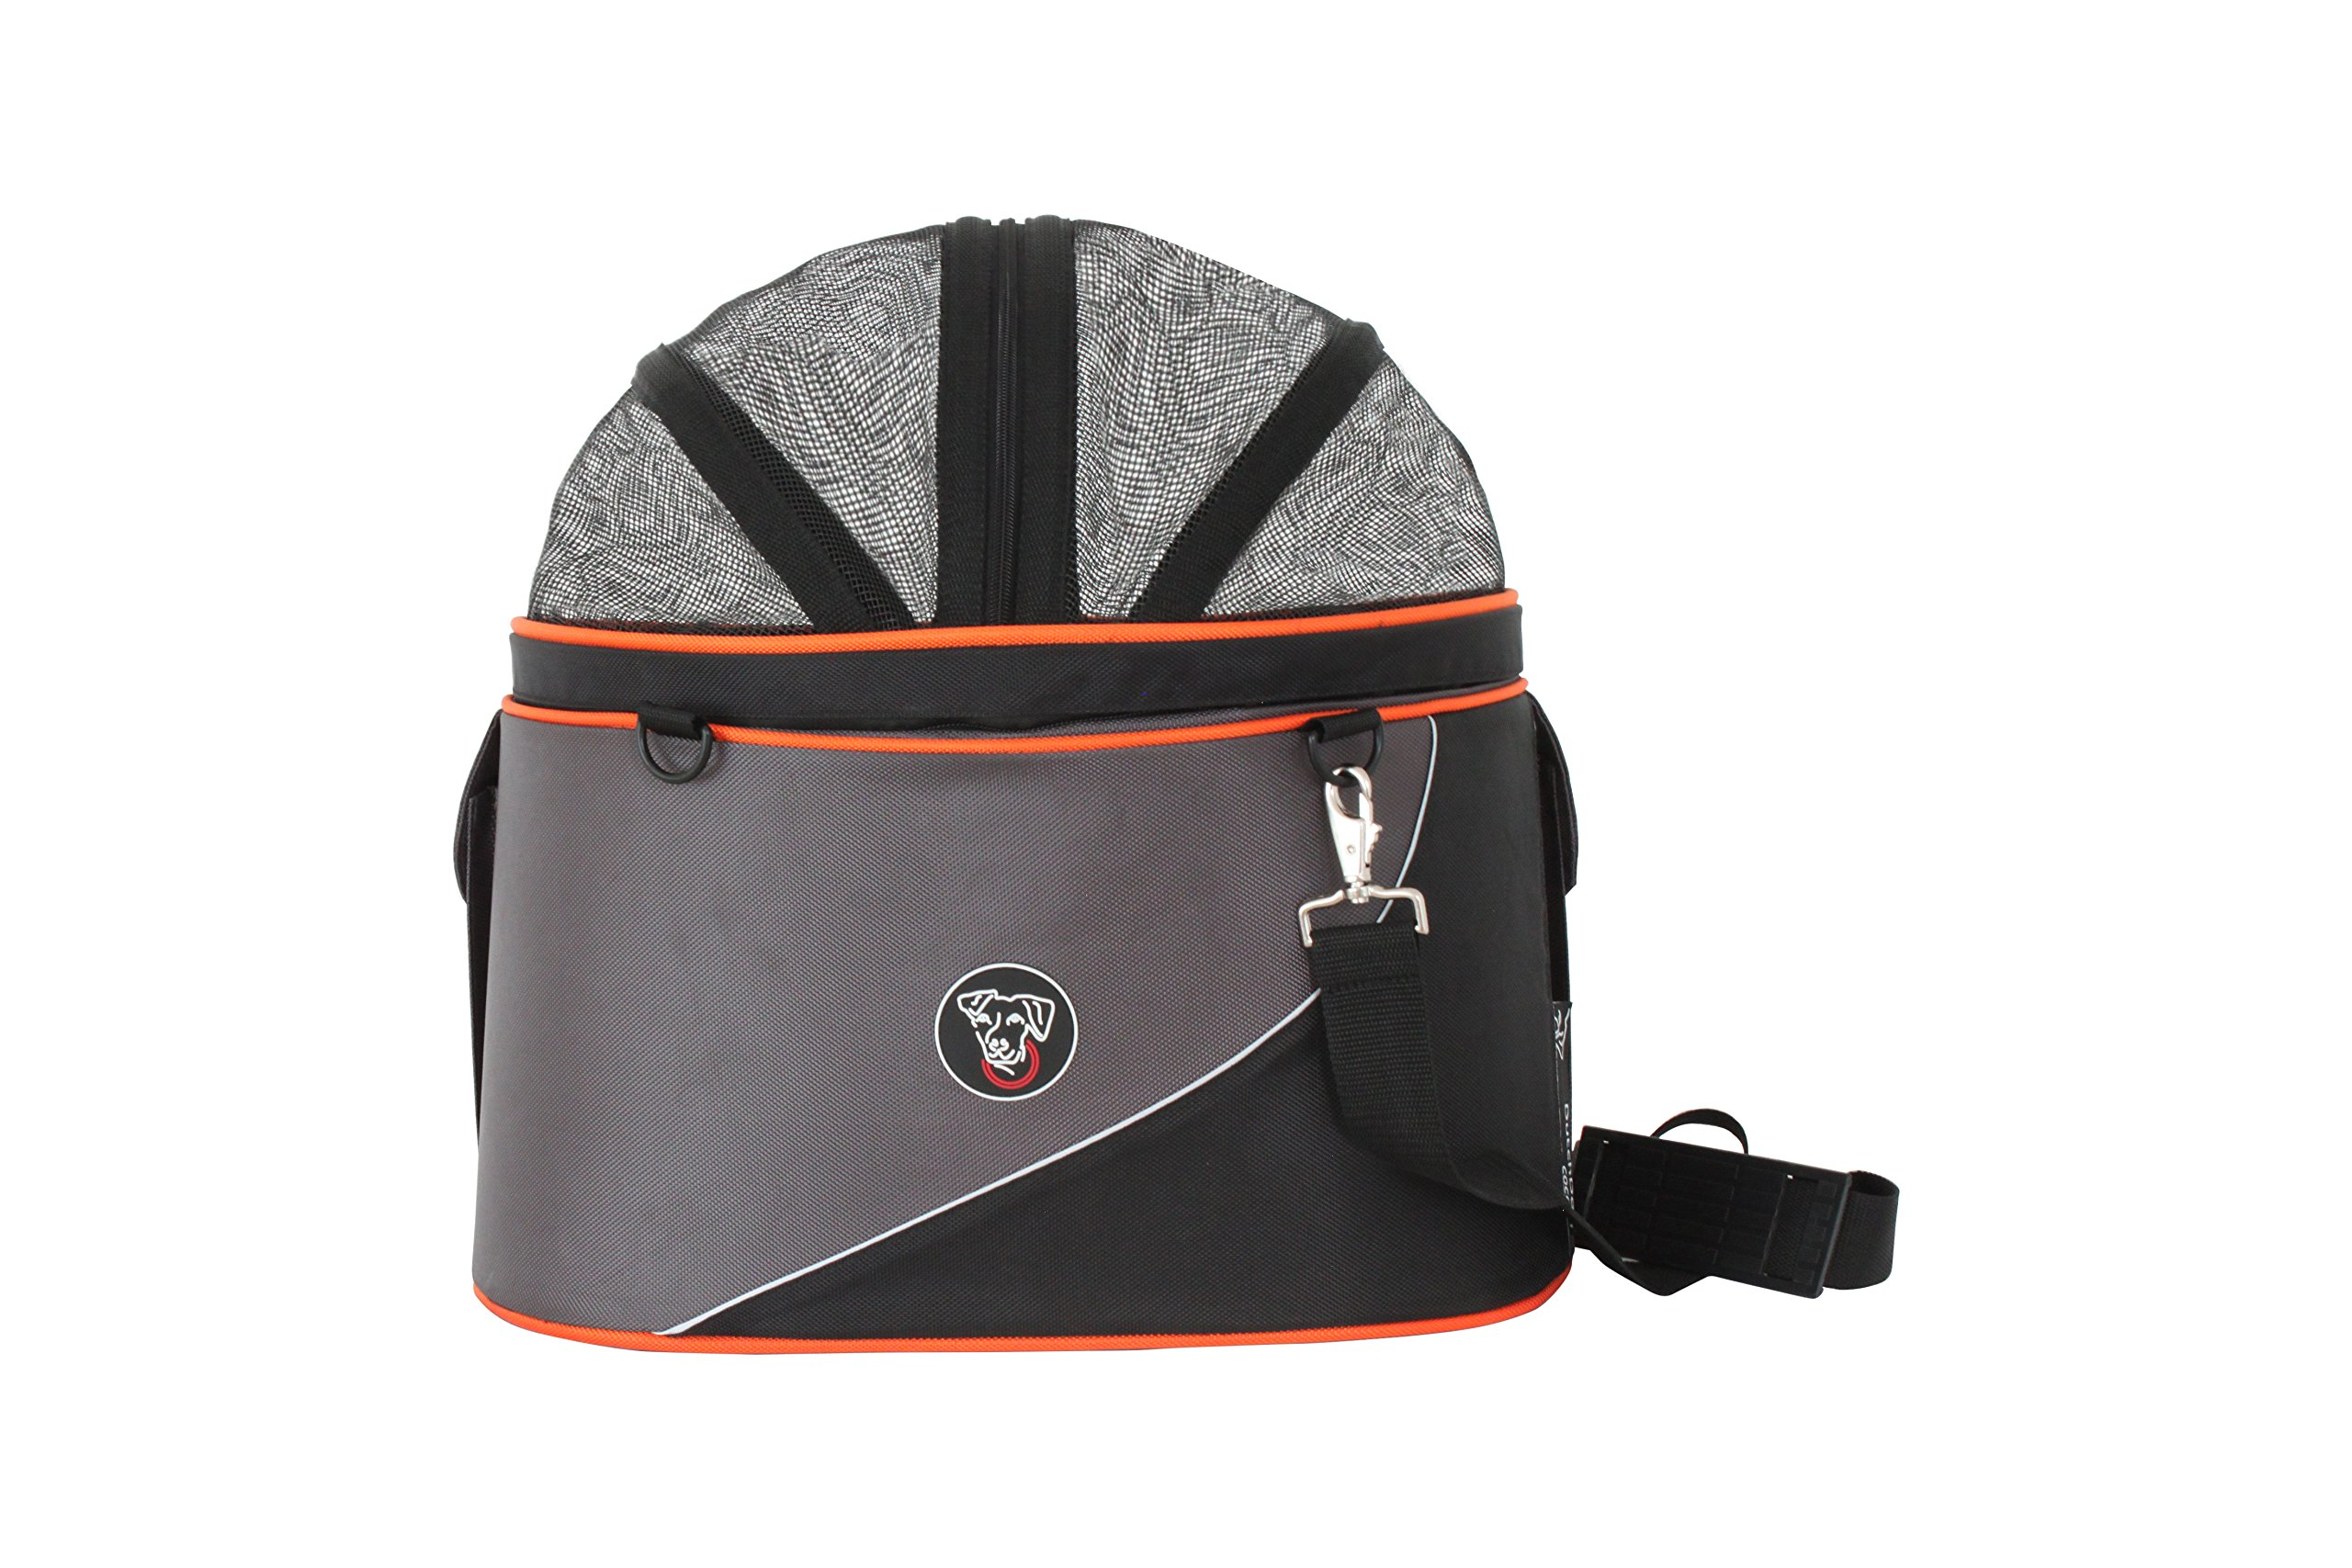 DoggyRide Cocoon Pet Carrier, Airline Carrier, car seat and Ready for use as Bicycle Basket, Large, Anthracite/Orange